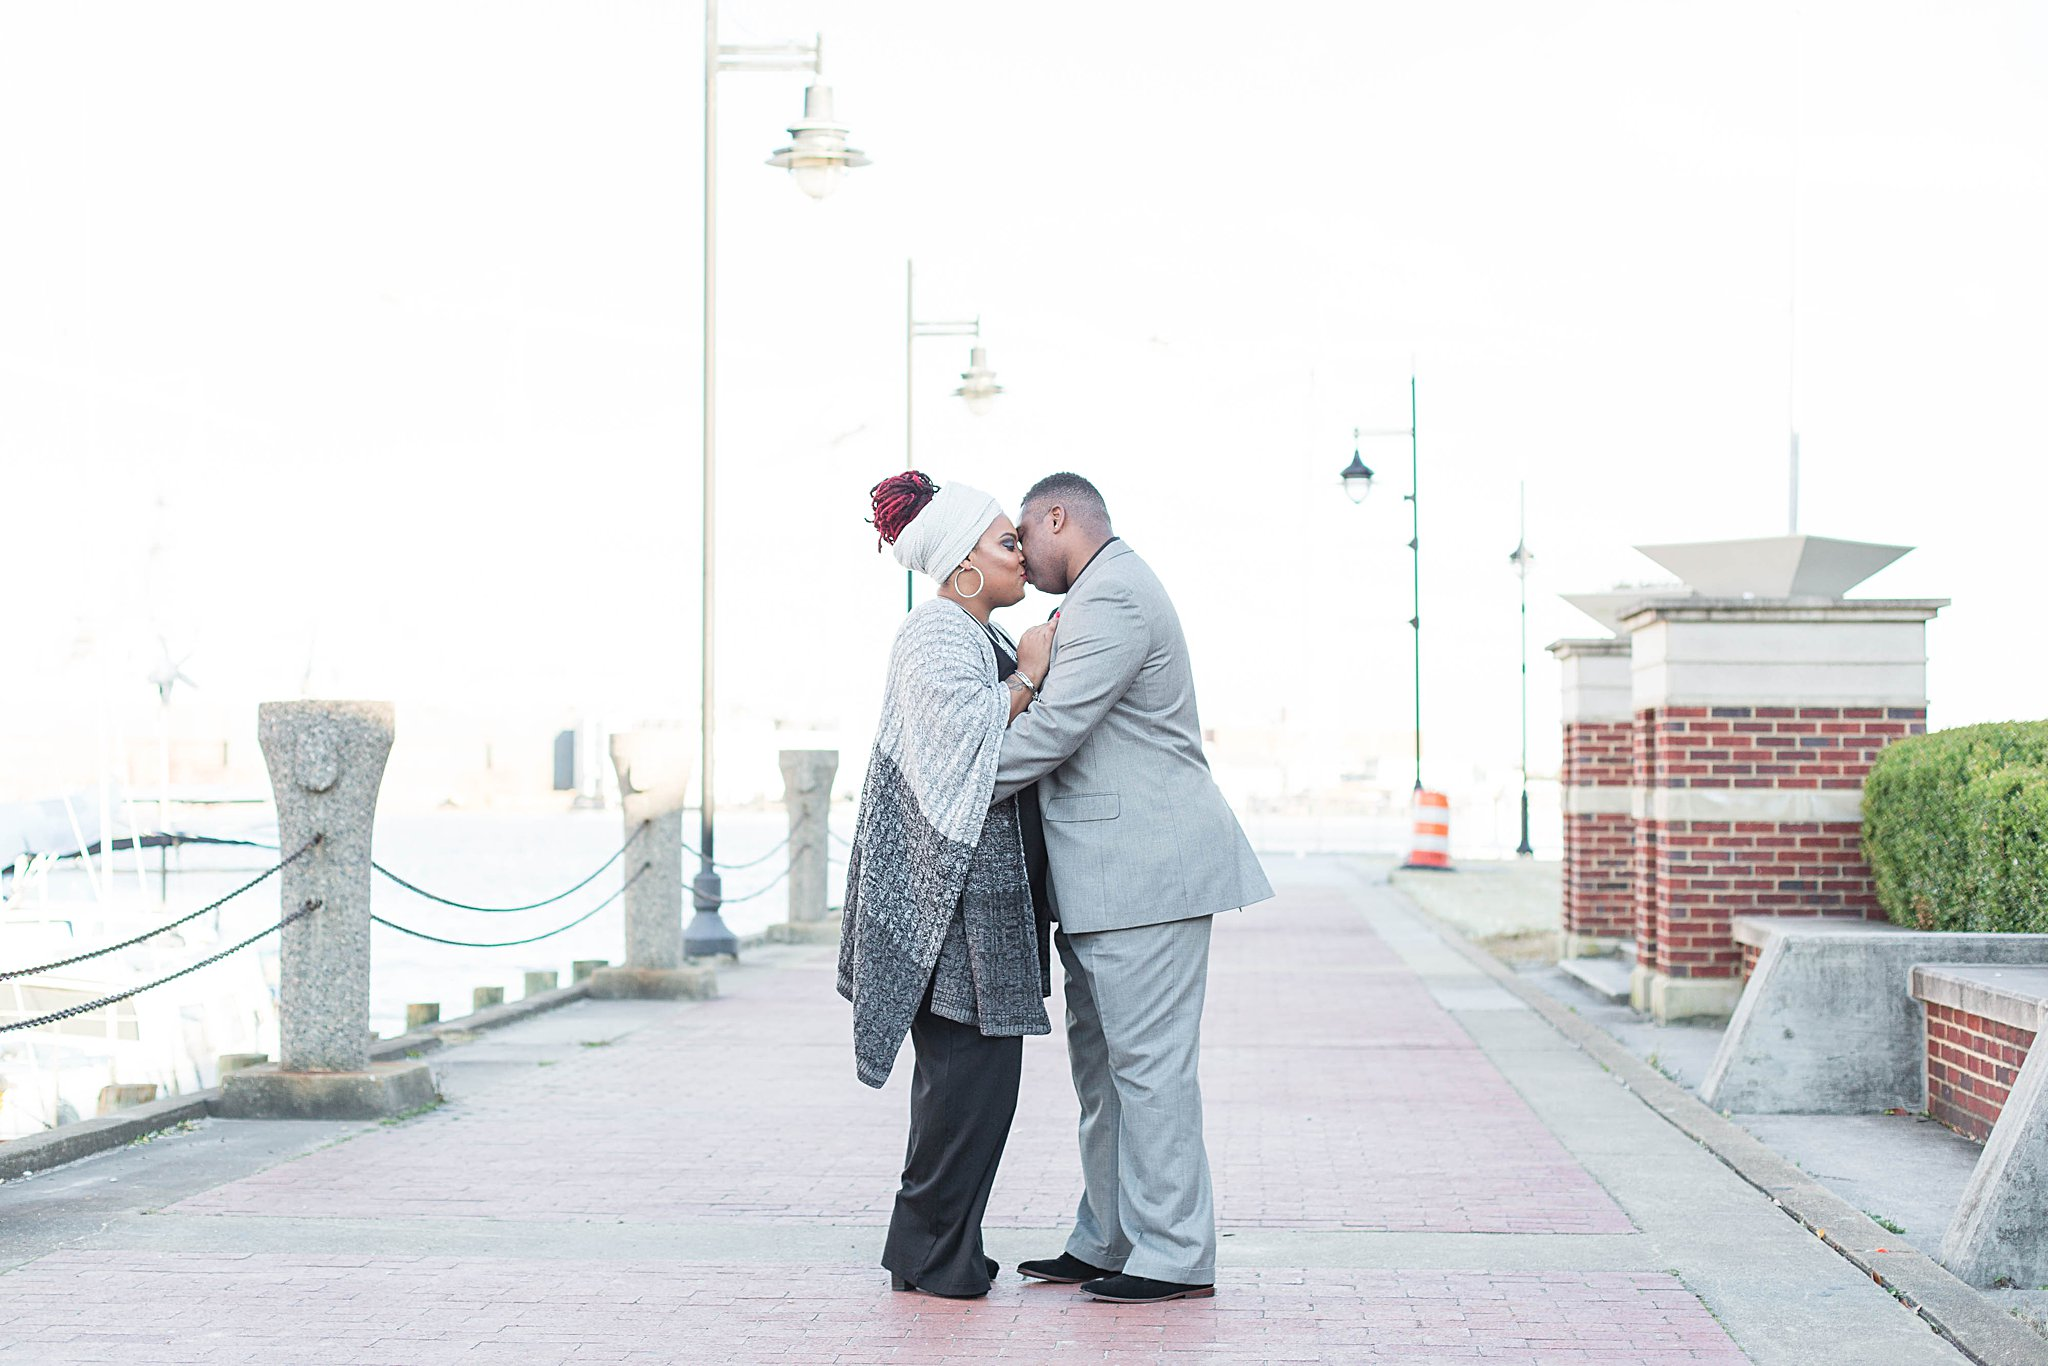 downtown_portsmouth_engagement_session_0478.jpg